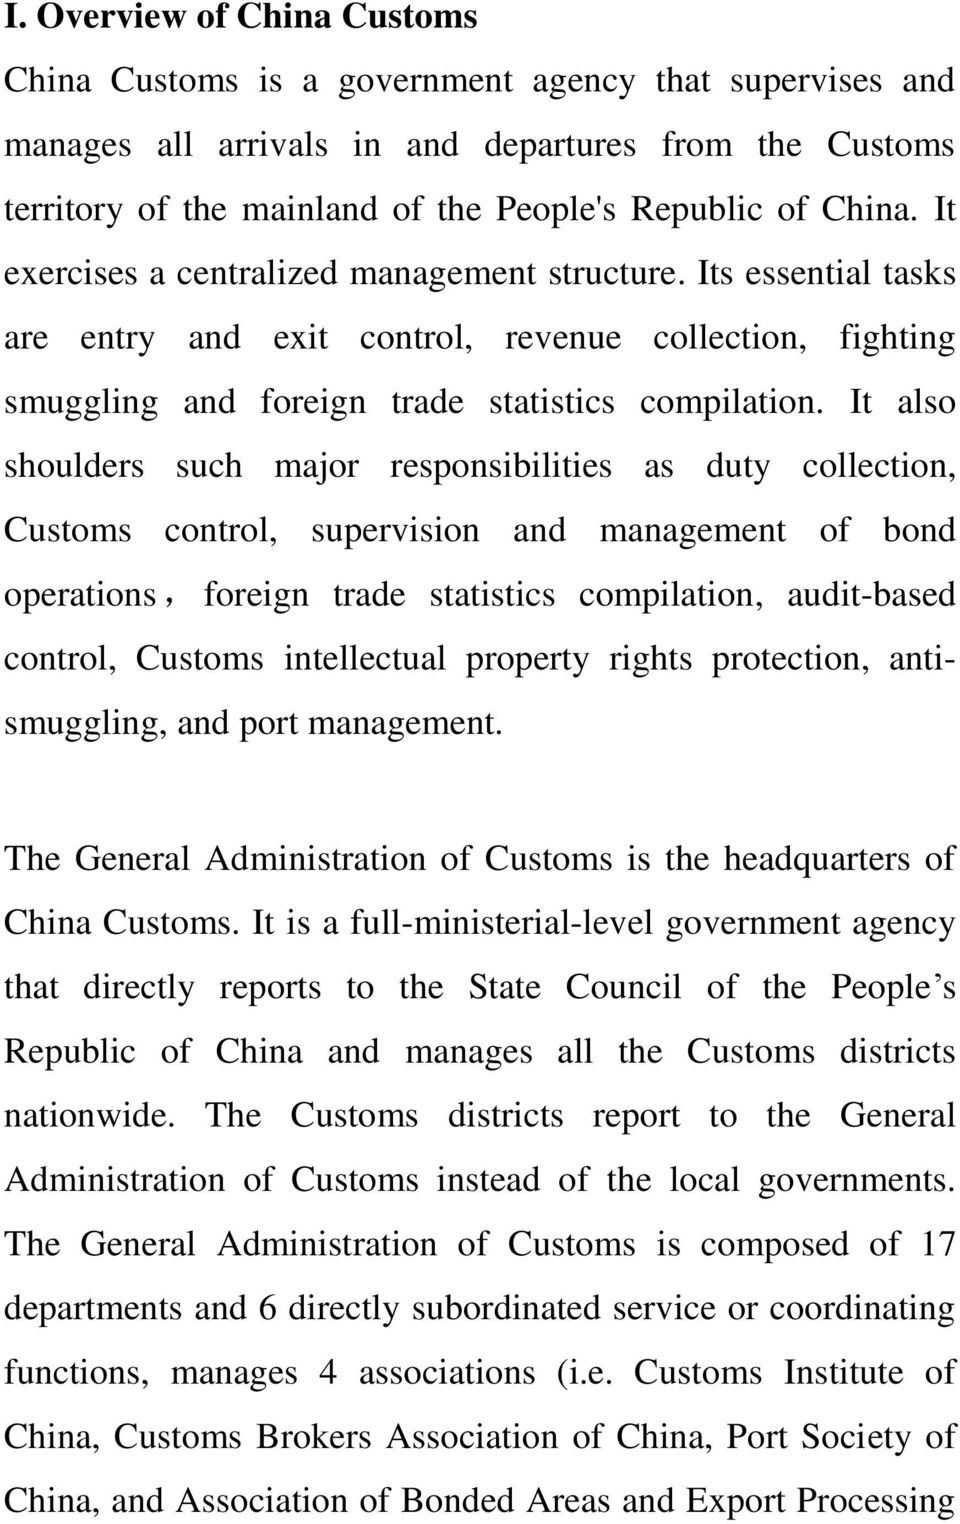 It also shoulders such major responsibilities as duty collection, Customs control, supervision and management of bond operations, foreign trade statistics compilation, audit-based control, Customs